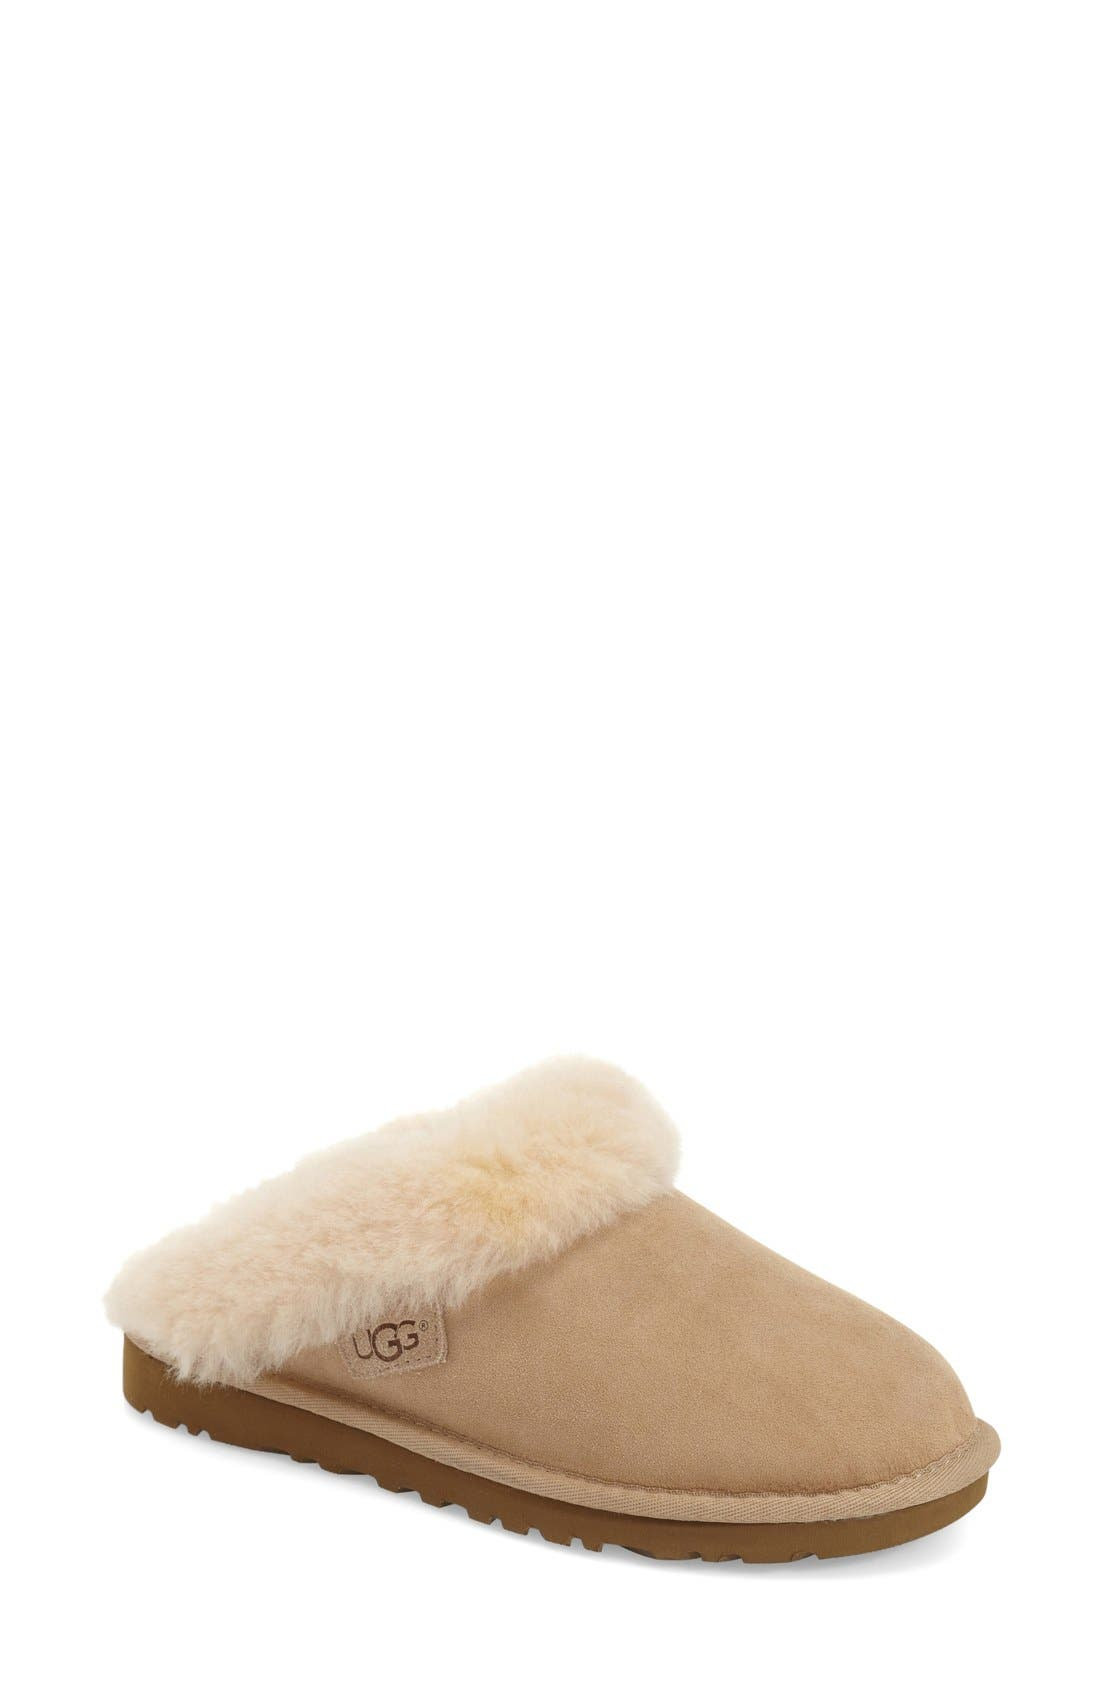 Alternate Image 1 Selected - UGG® 'Cluggette' Genuine Shearling Indoor/Outdoor Slipper (Women)